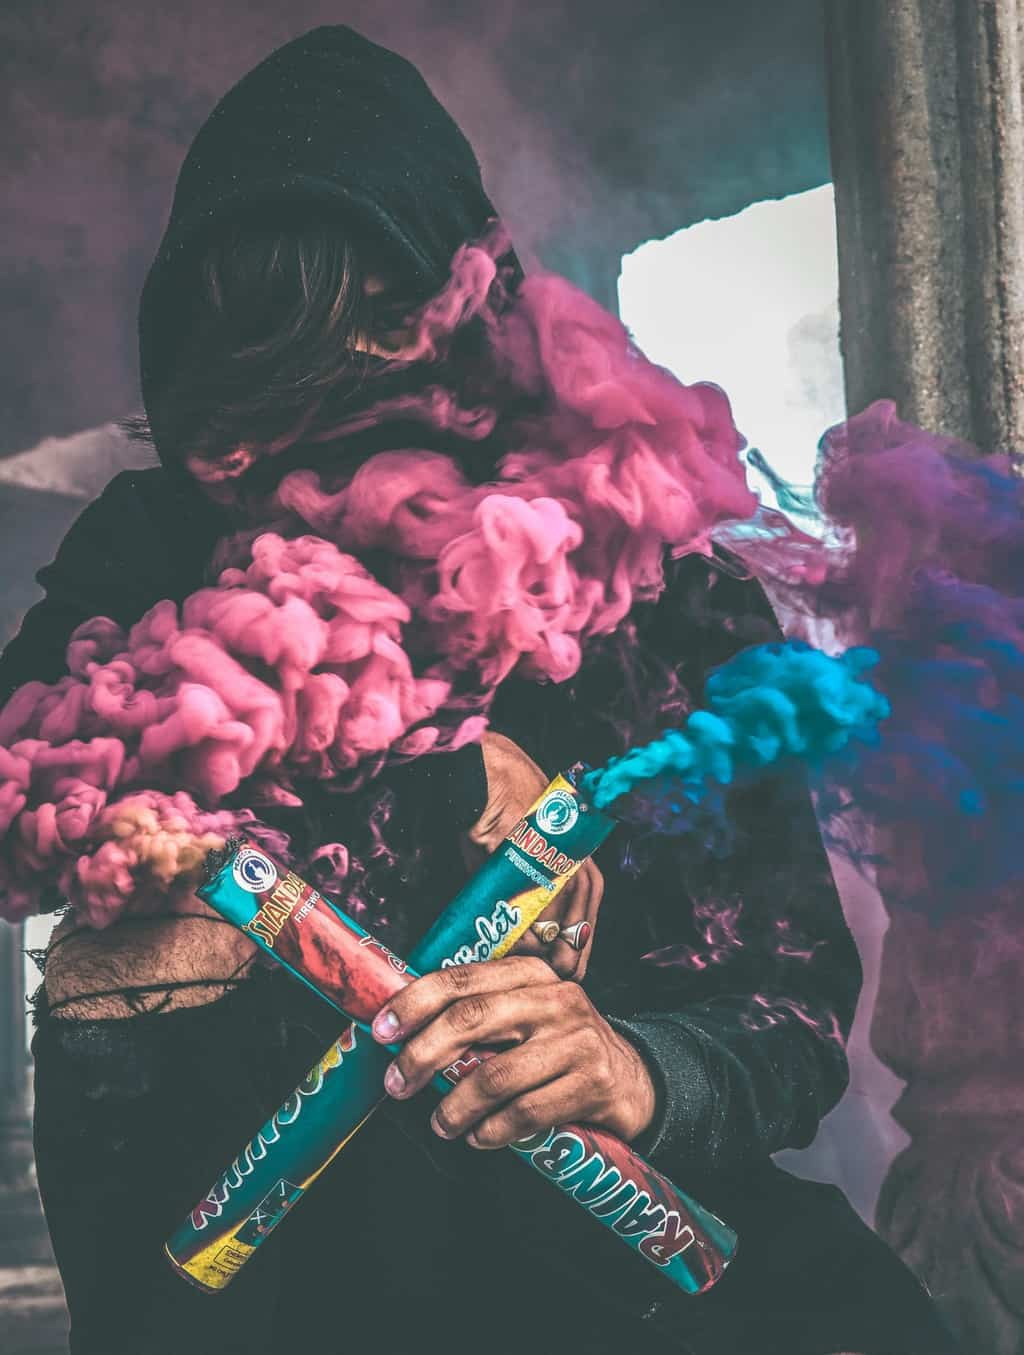 A Boy in Hood With Colorful Smoke